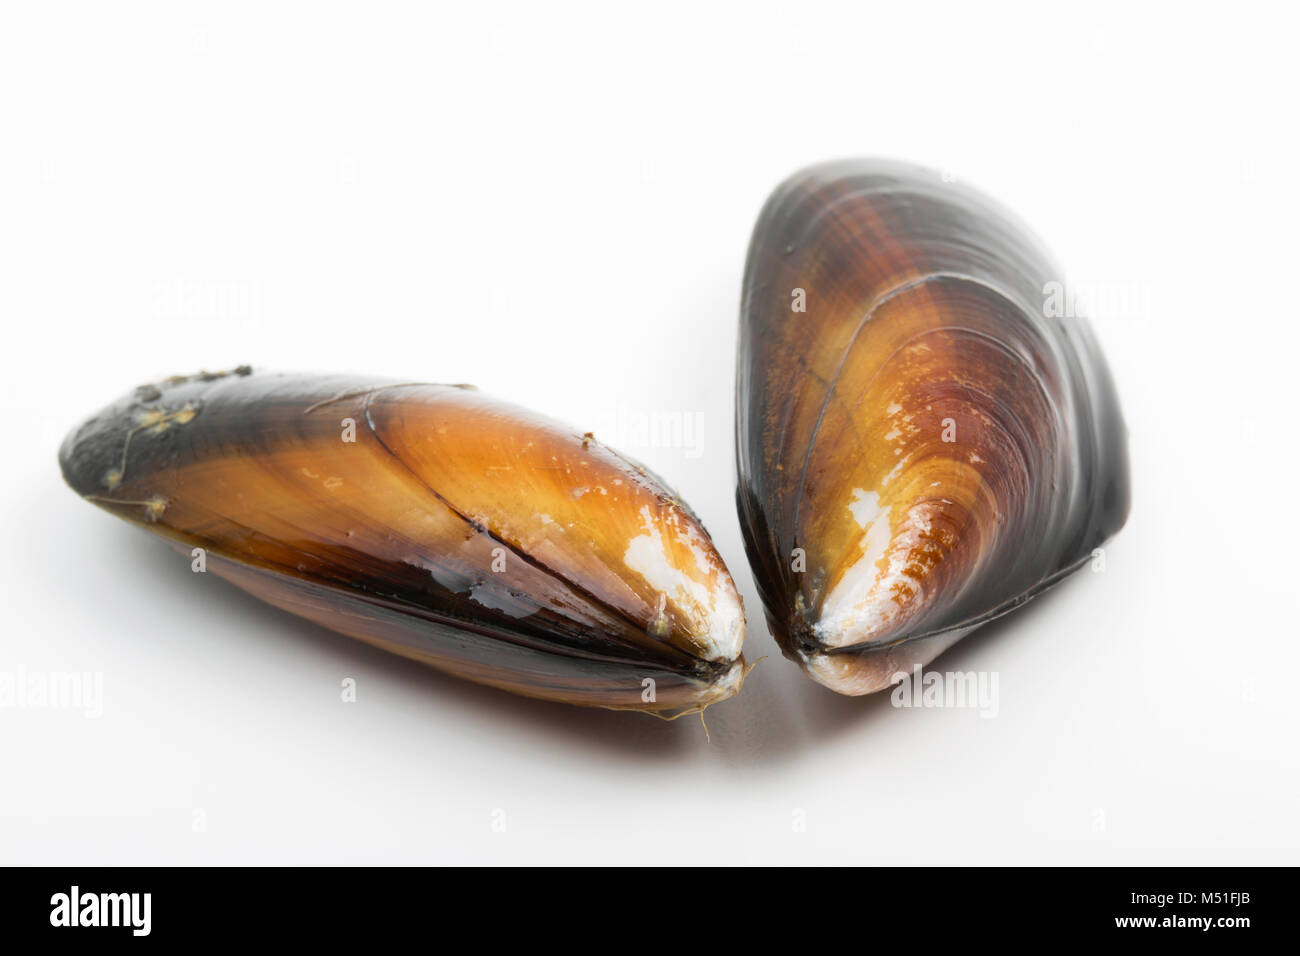 Live, rope-grown mussels, Mytilus edulis, bought from a supermarket. The shells should close when tapped. England - Stock Image